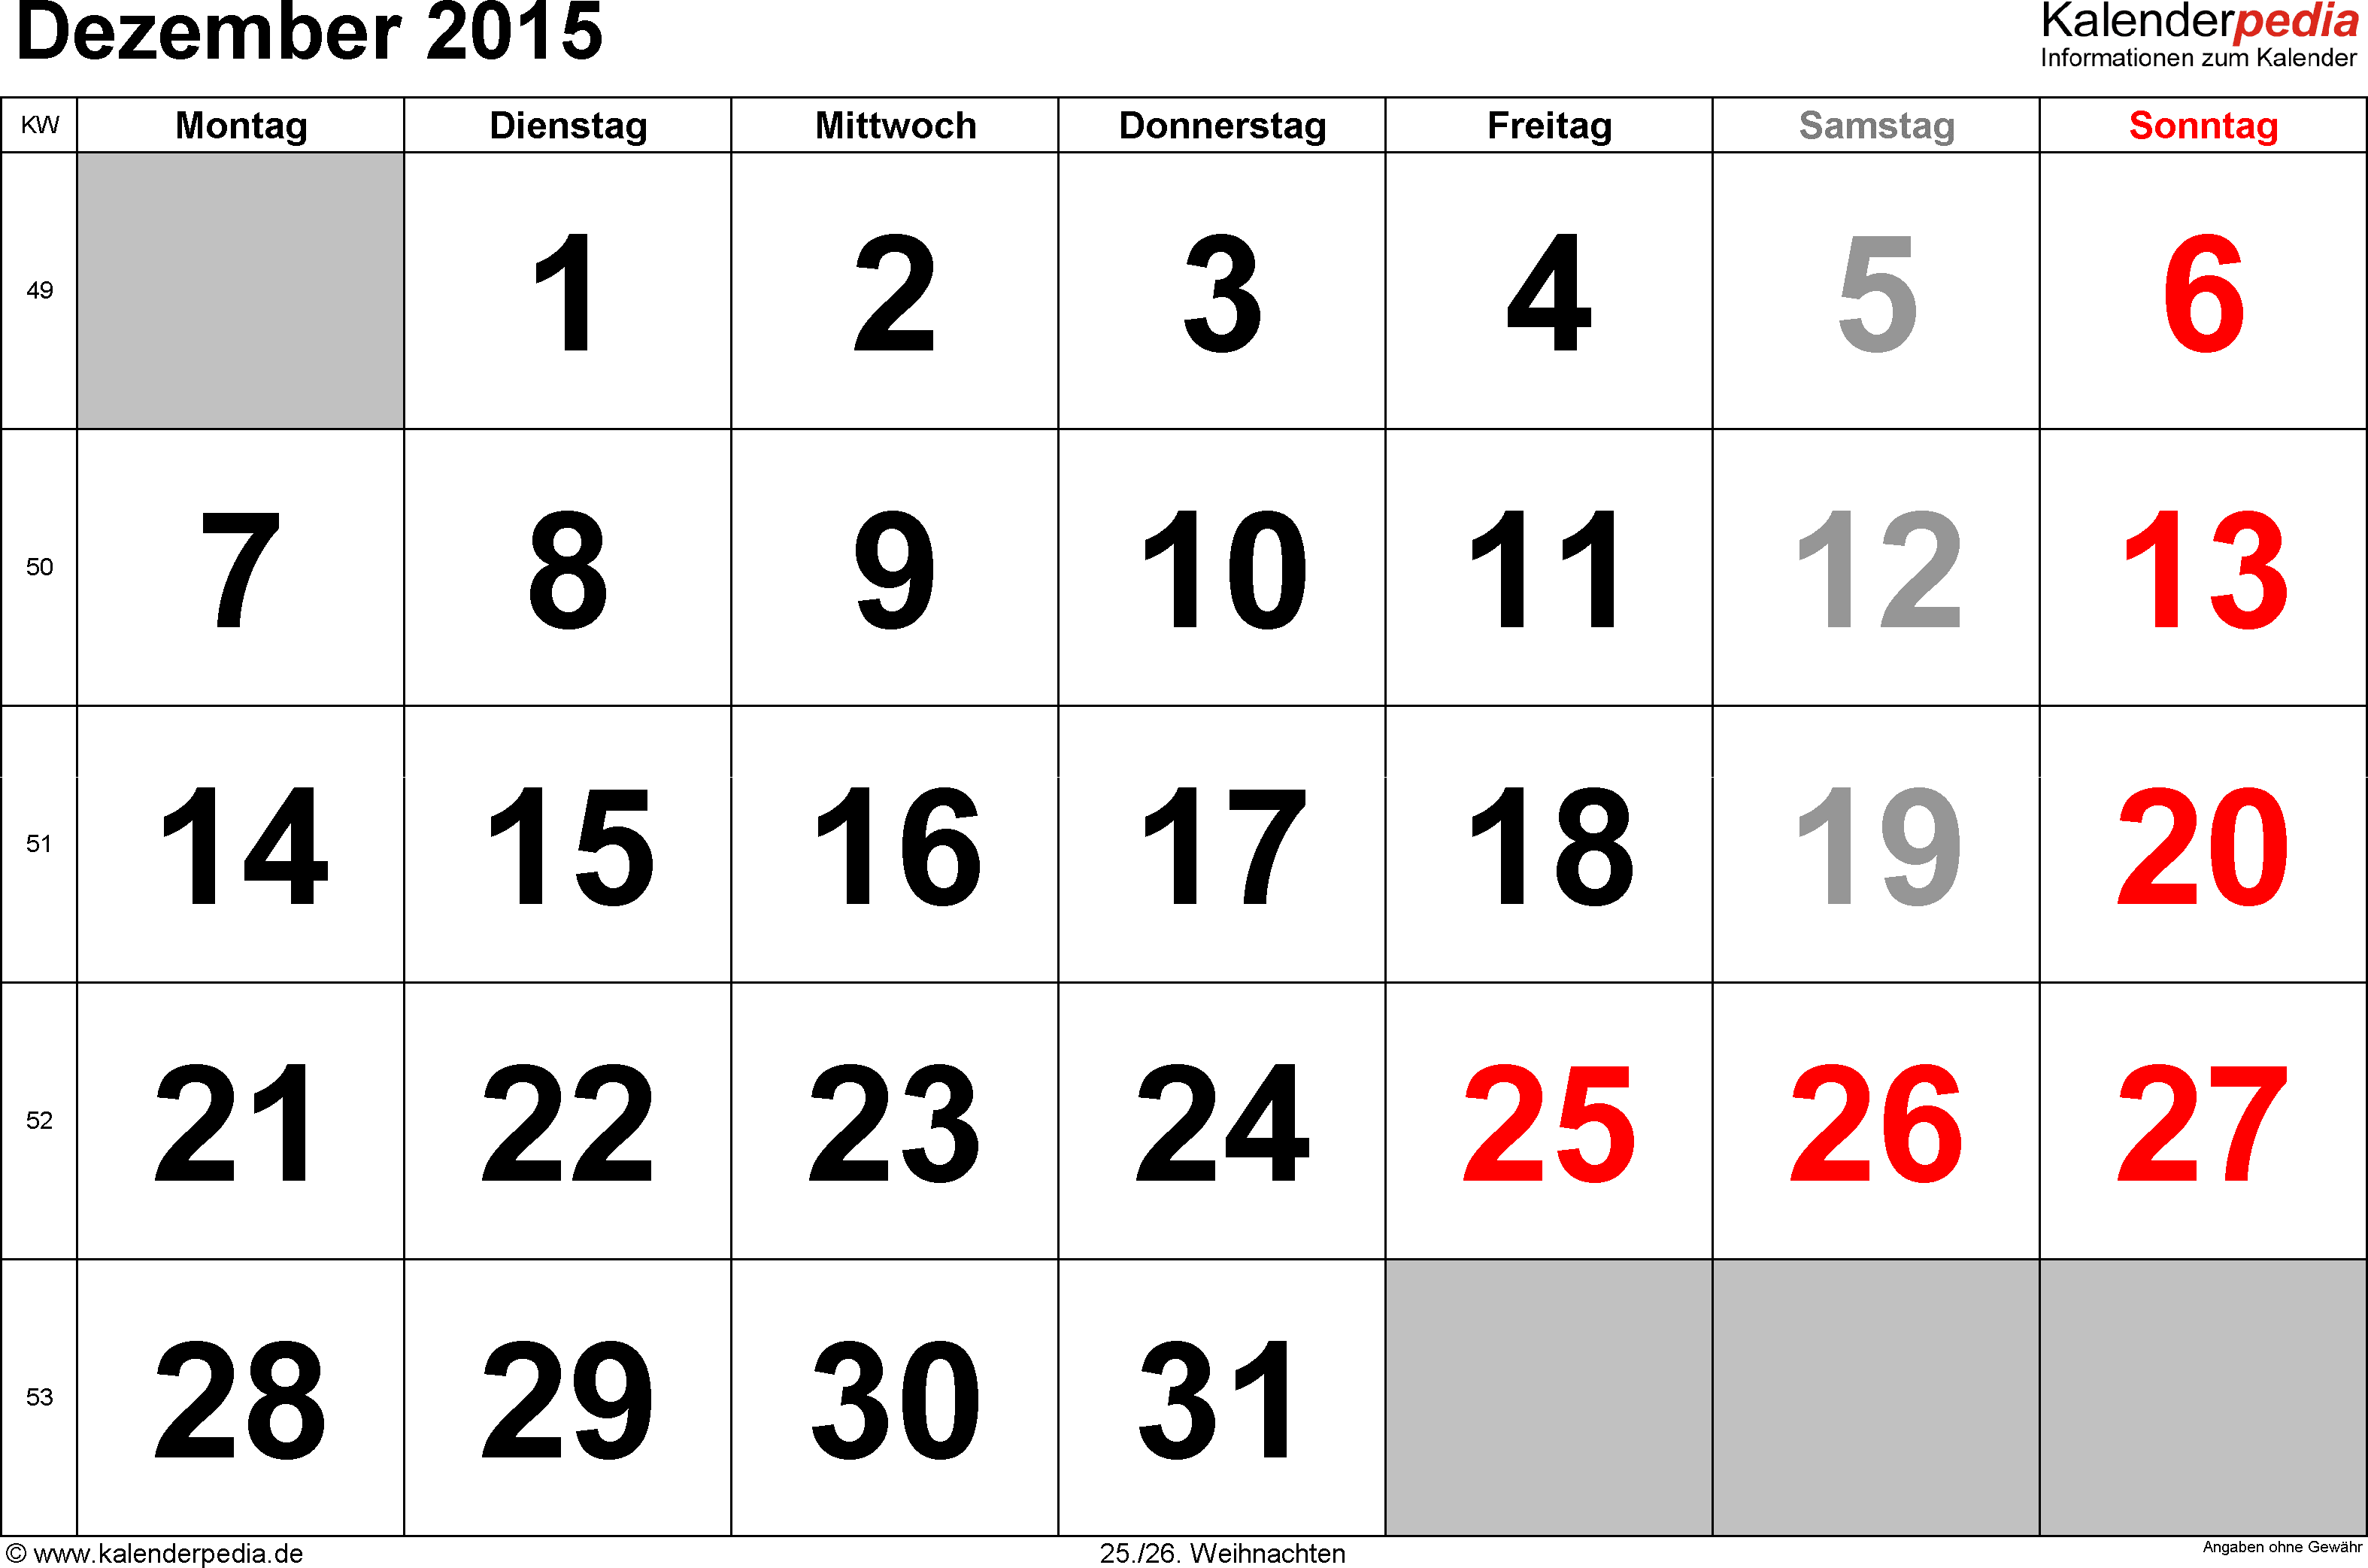 Kalender December 2015 im Querformat, grosse Ziffern